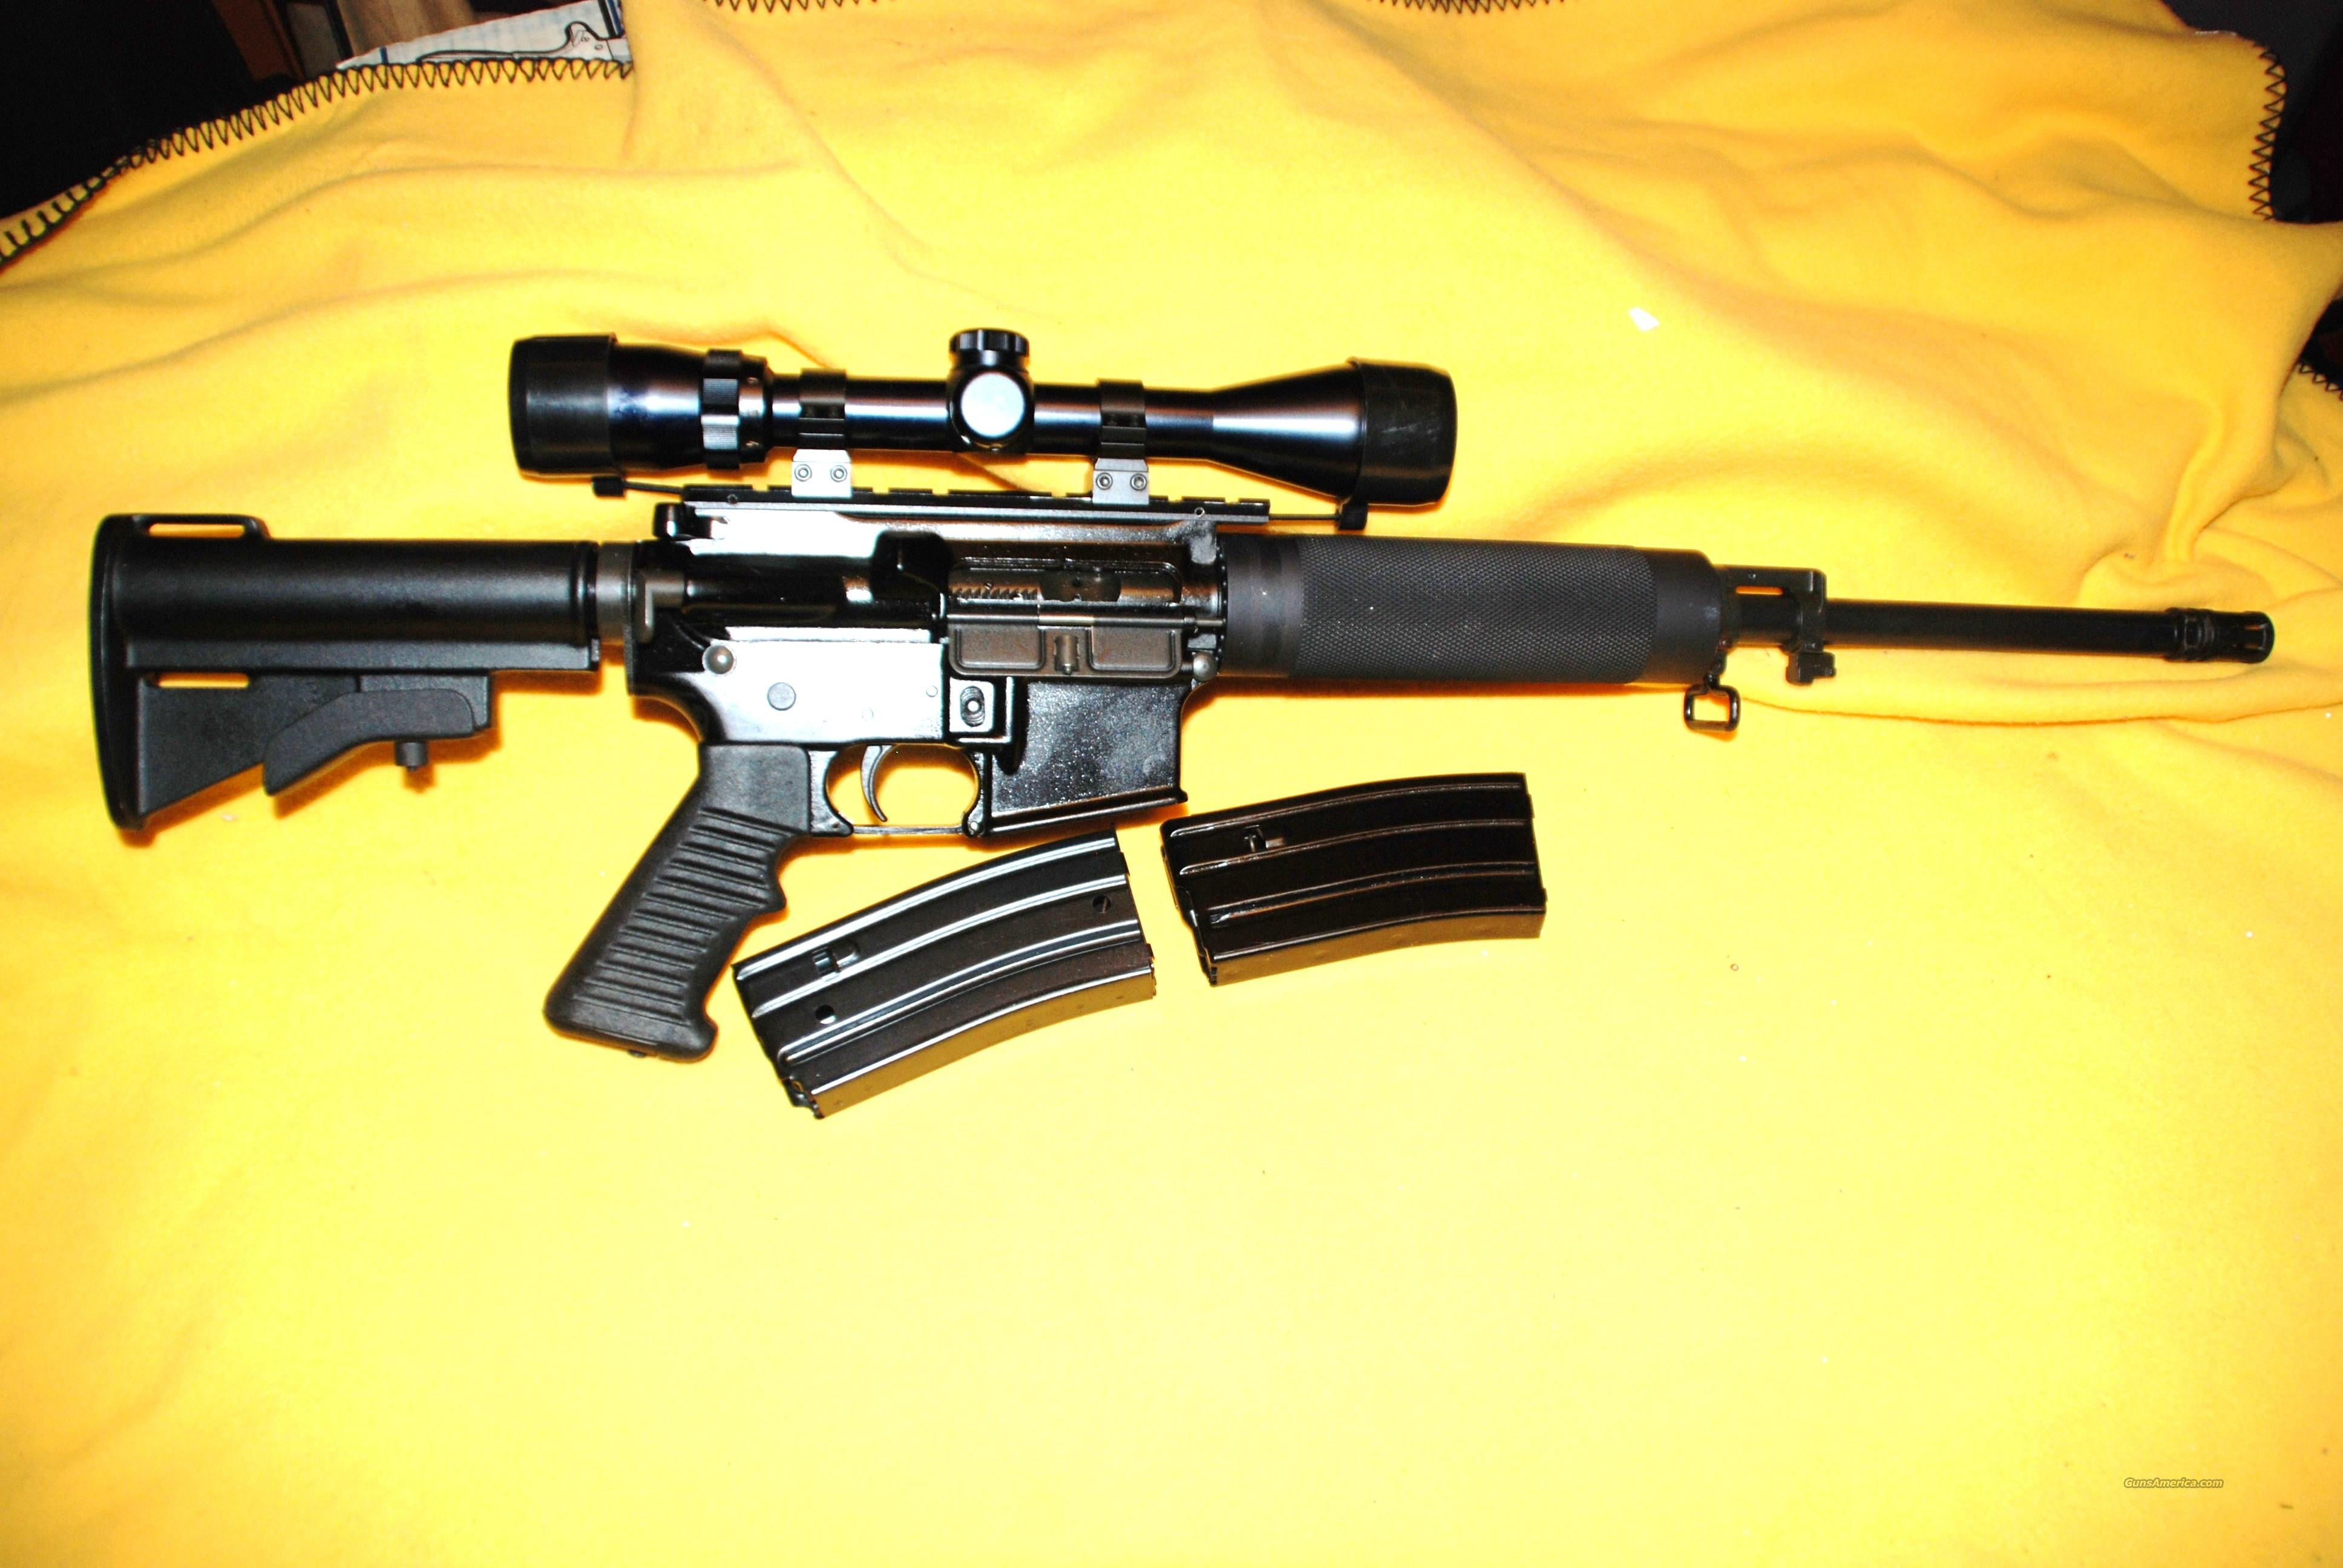 Olympic Arms AR 15 Model ML-2 223/scope  Guns > Rifles > AR-15 Rifles - Small Manufacturers > Complete Rifle